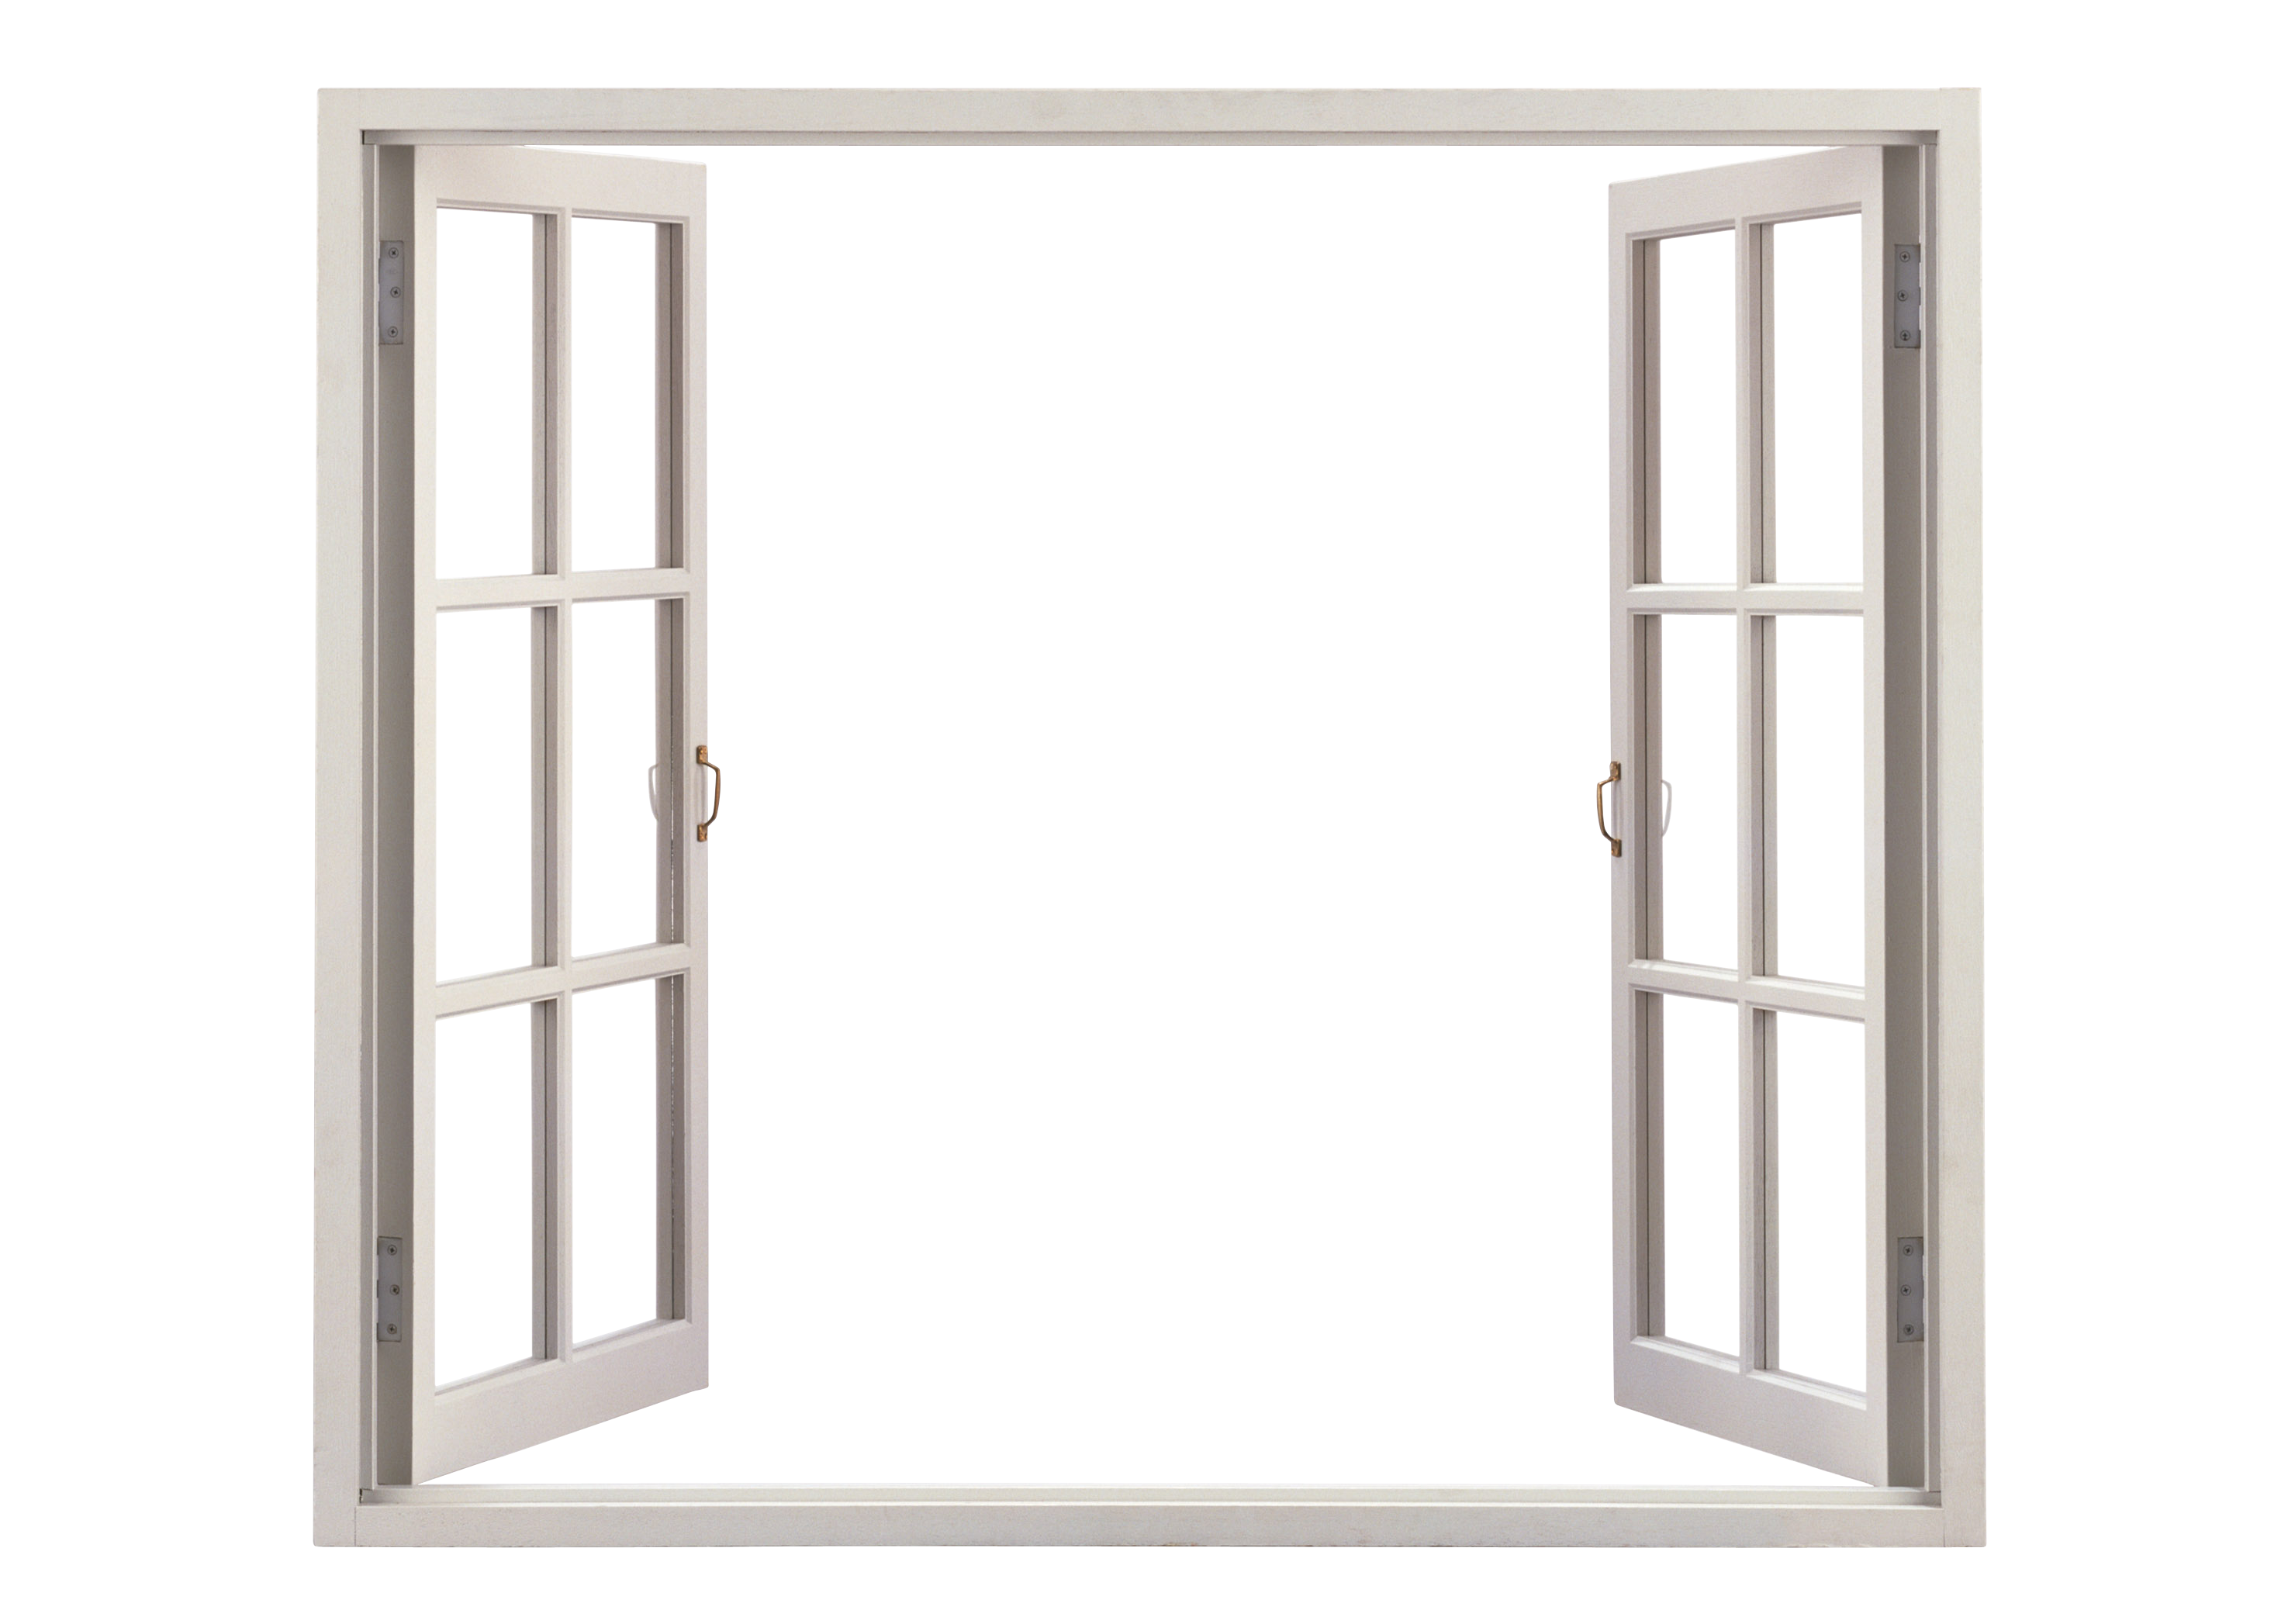 Windows Free Transparent Png PNG Images